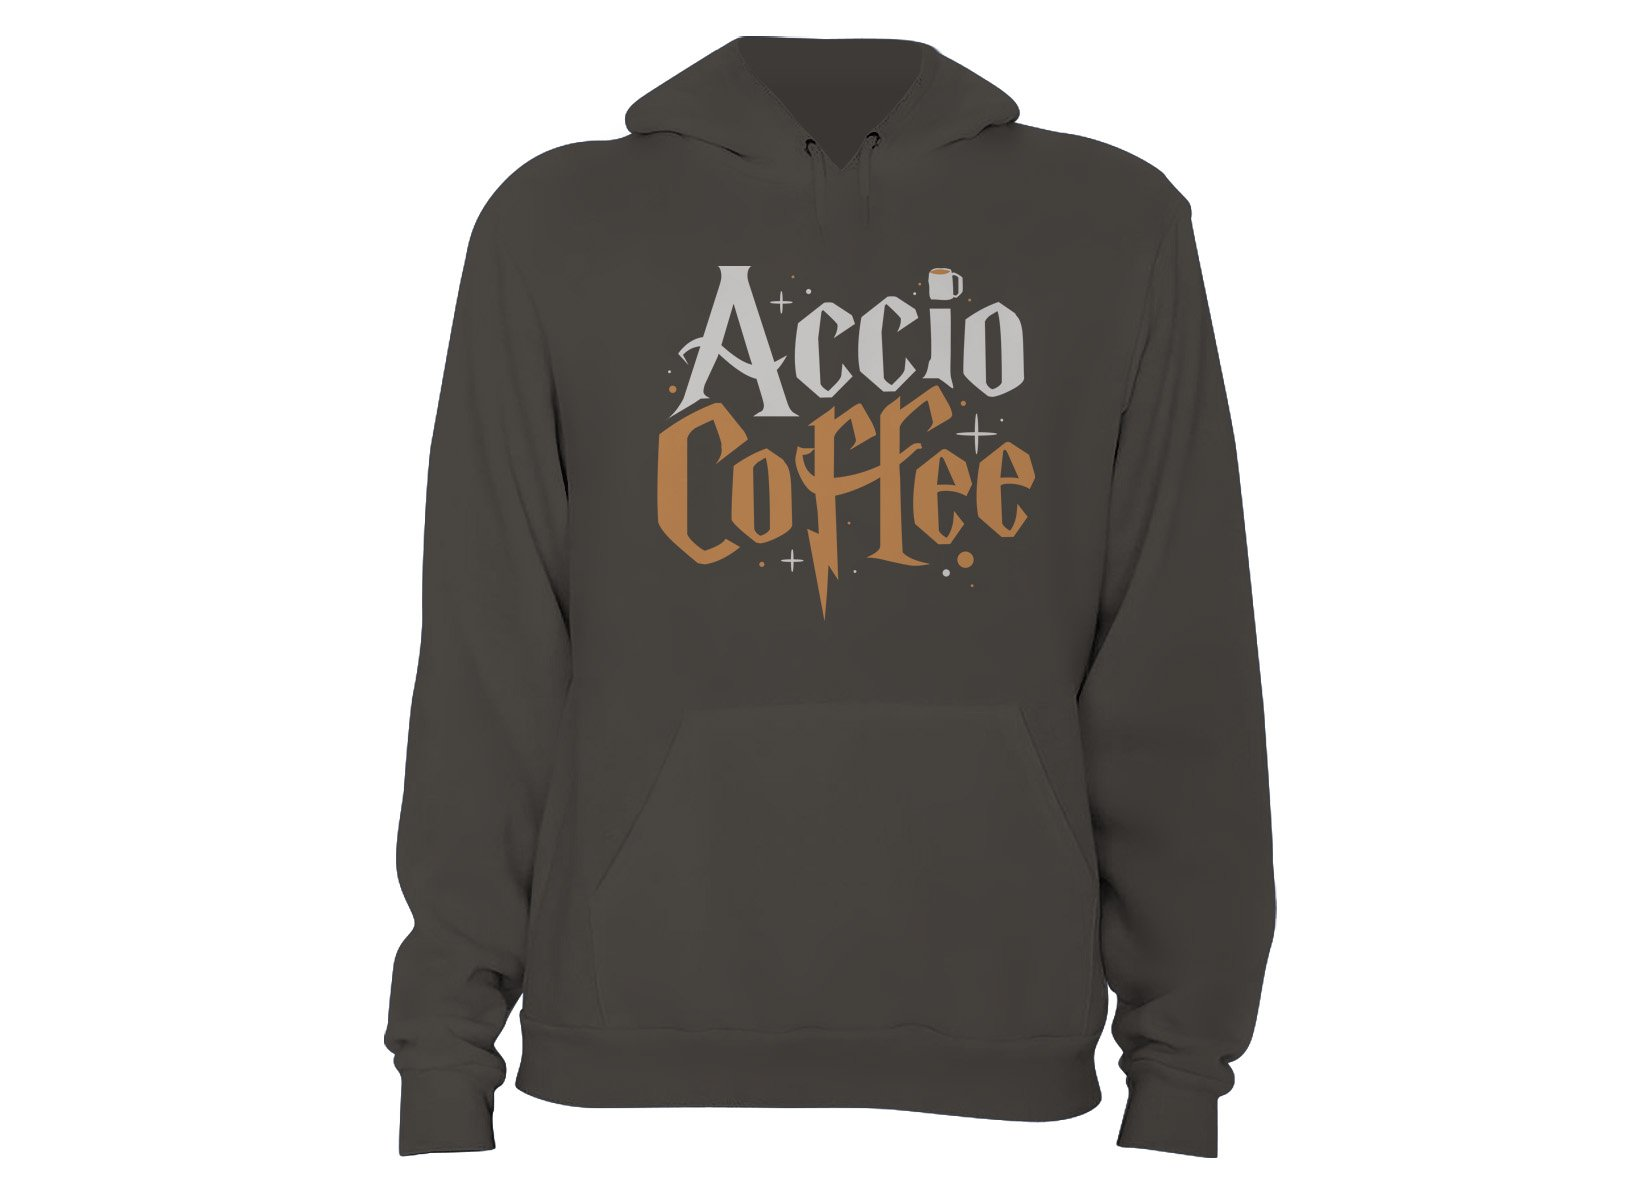 Accio Coffee on Hoodie